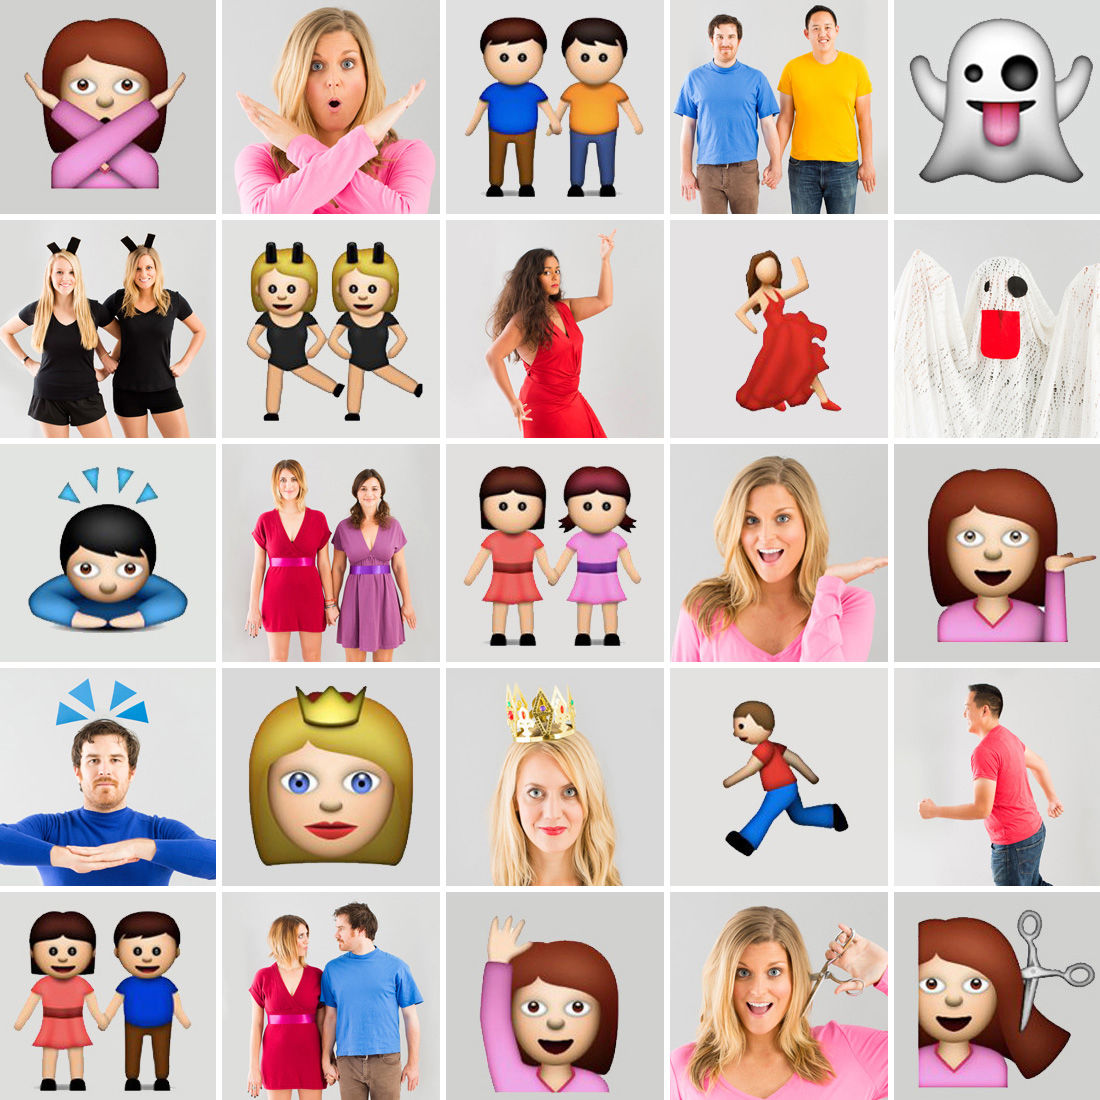 emoji costumes pictures  photos  and images for facebook